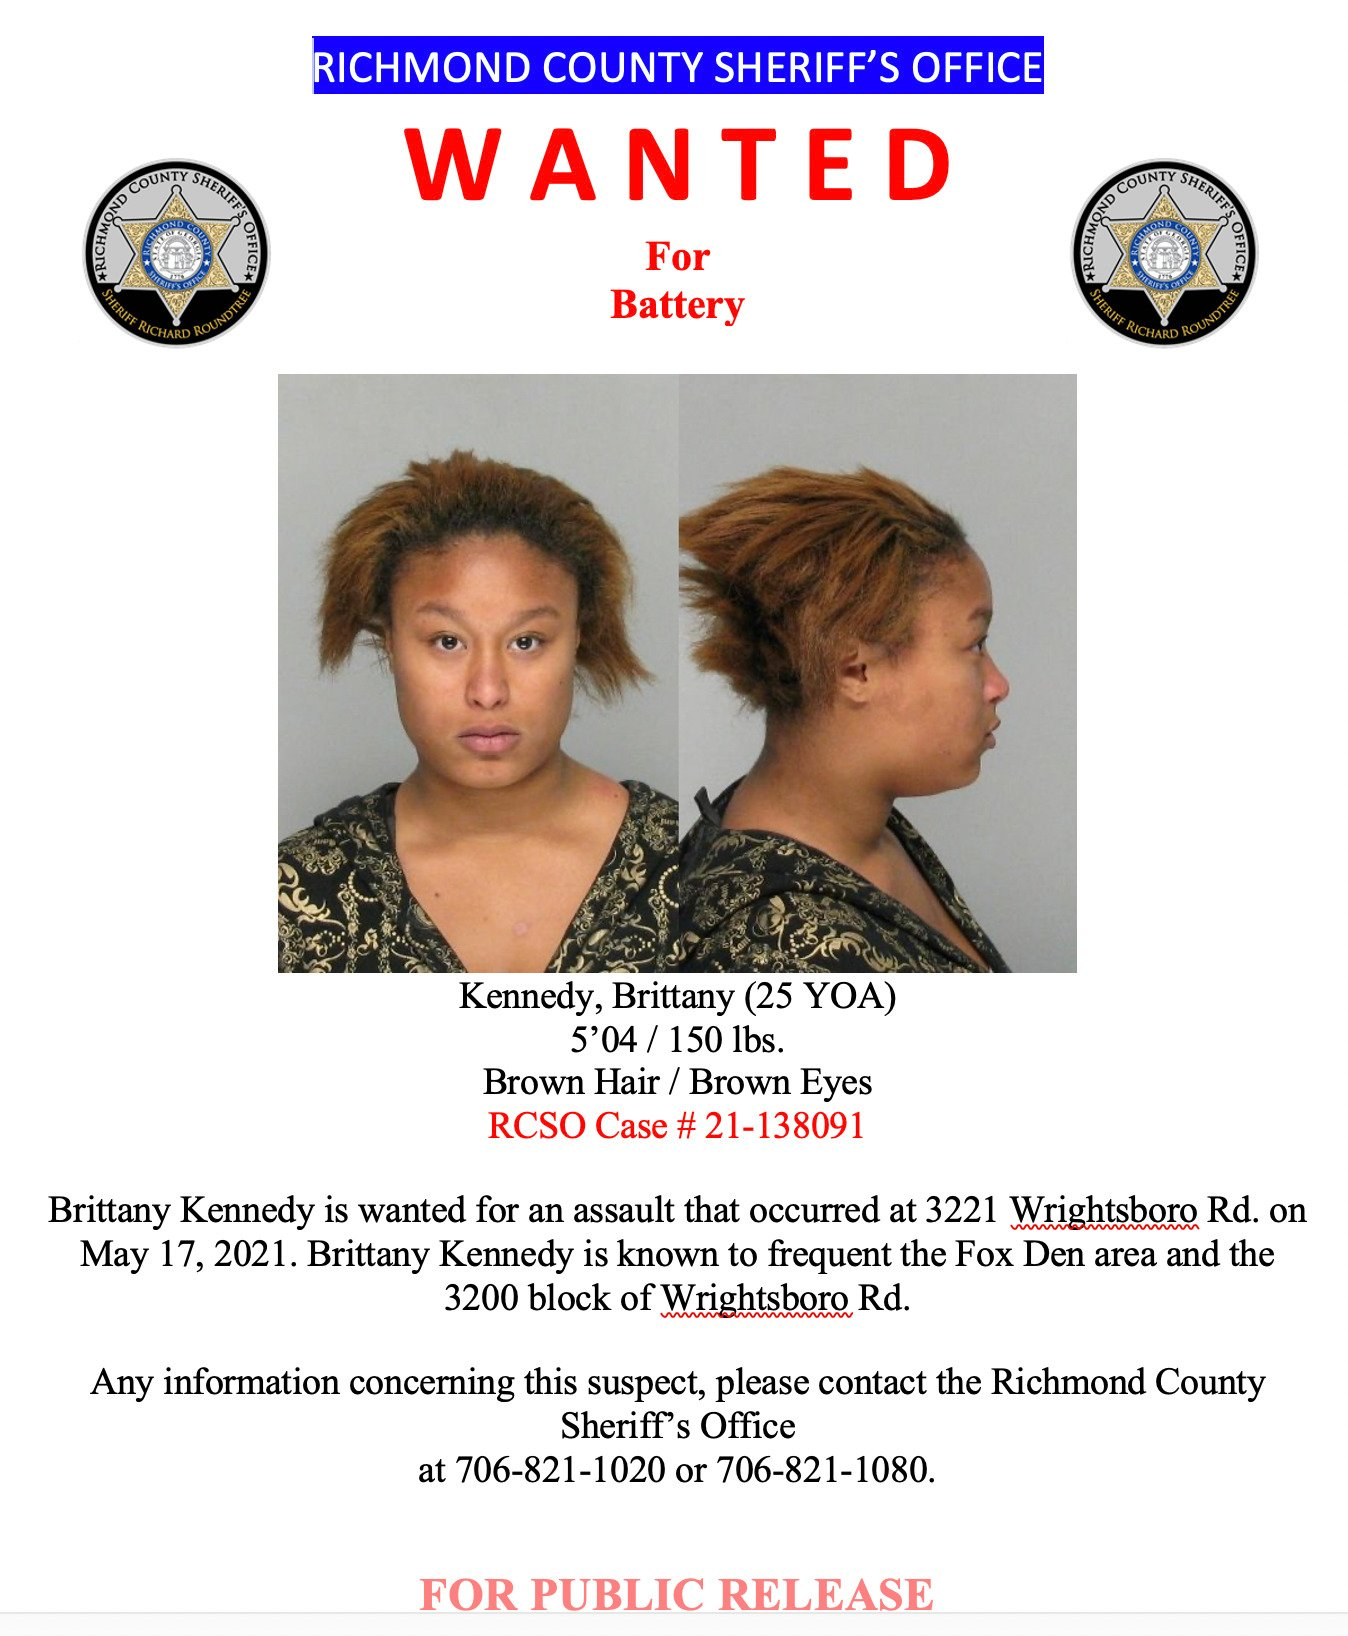 wanted poster for Brittany Kennedy showing her picture, front on and in profile